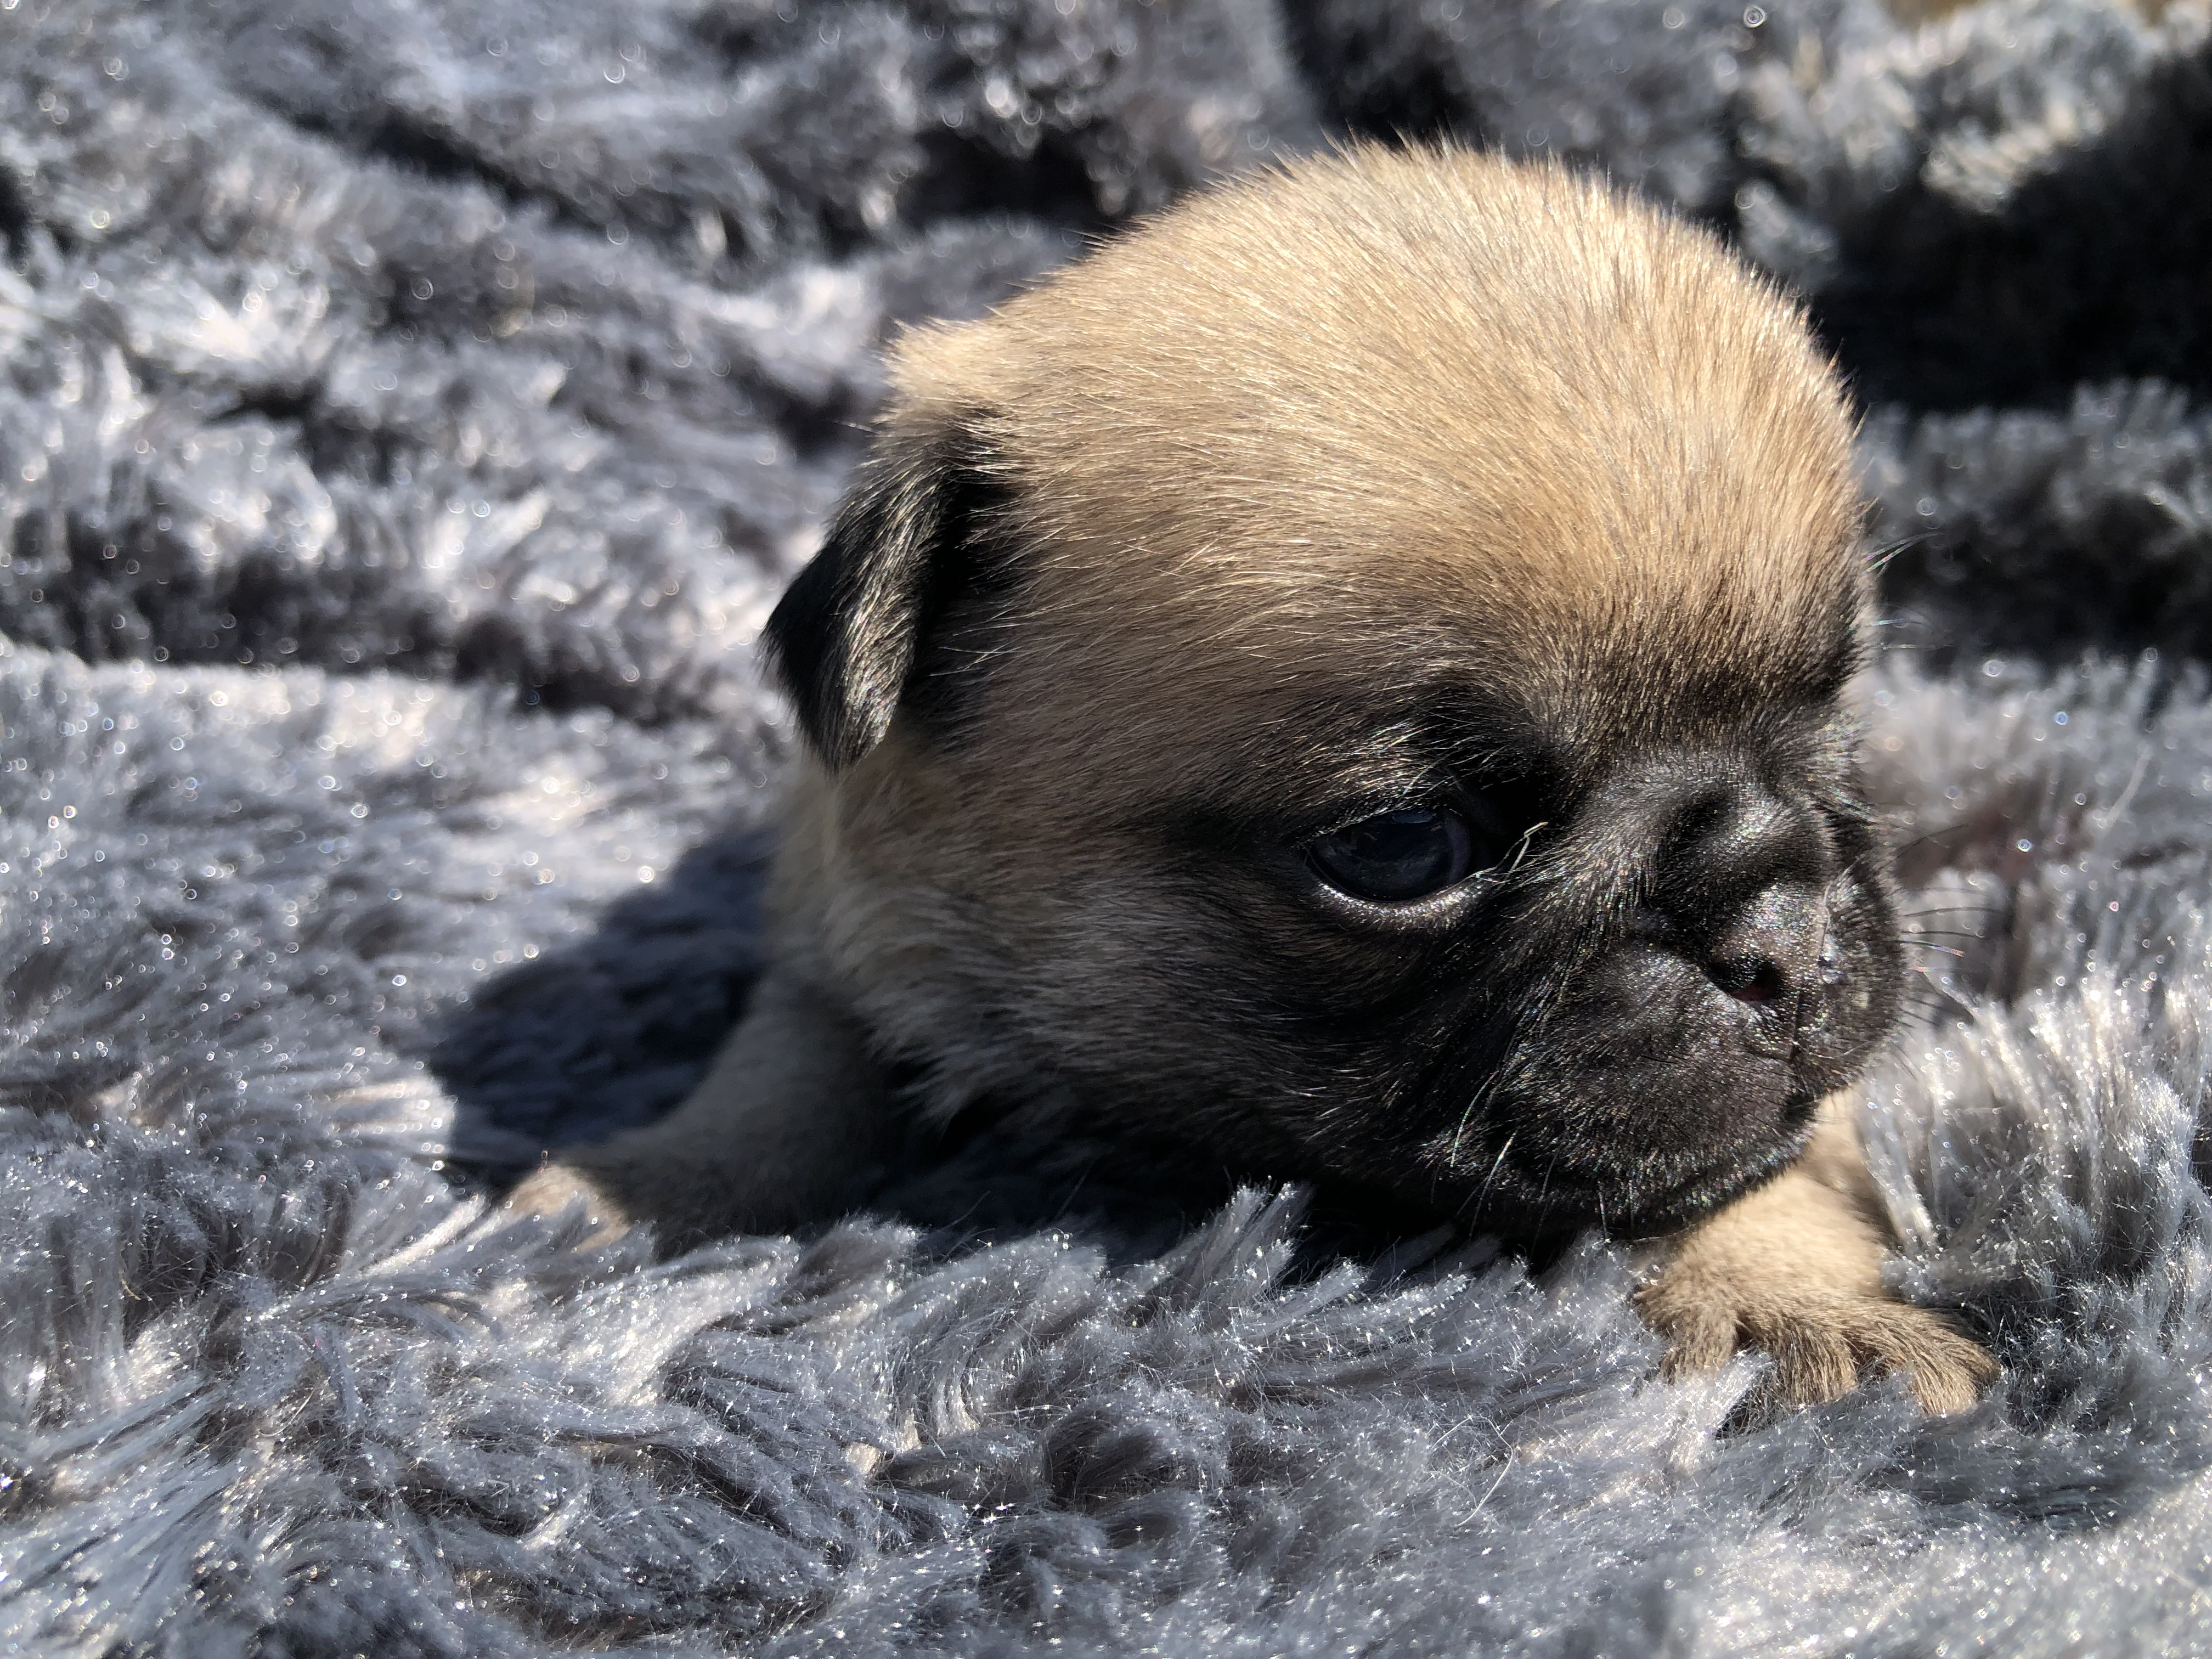 We have for sale quality PUG PUPPIES